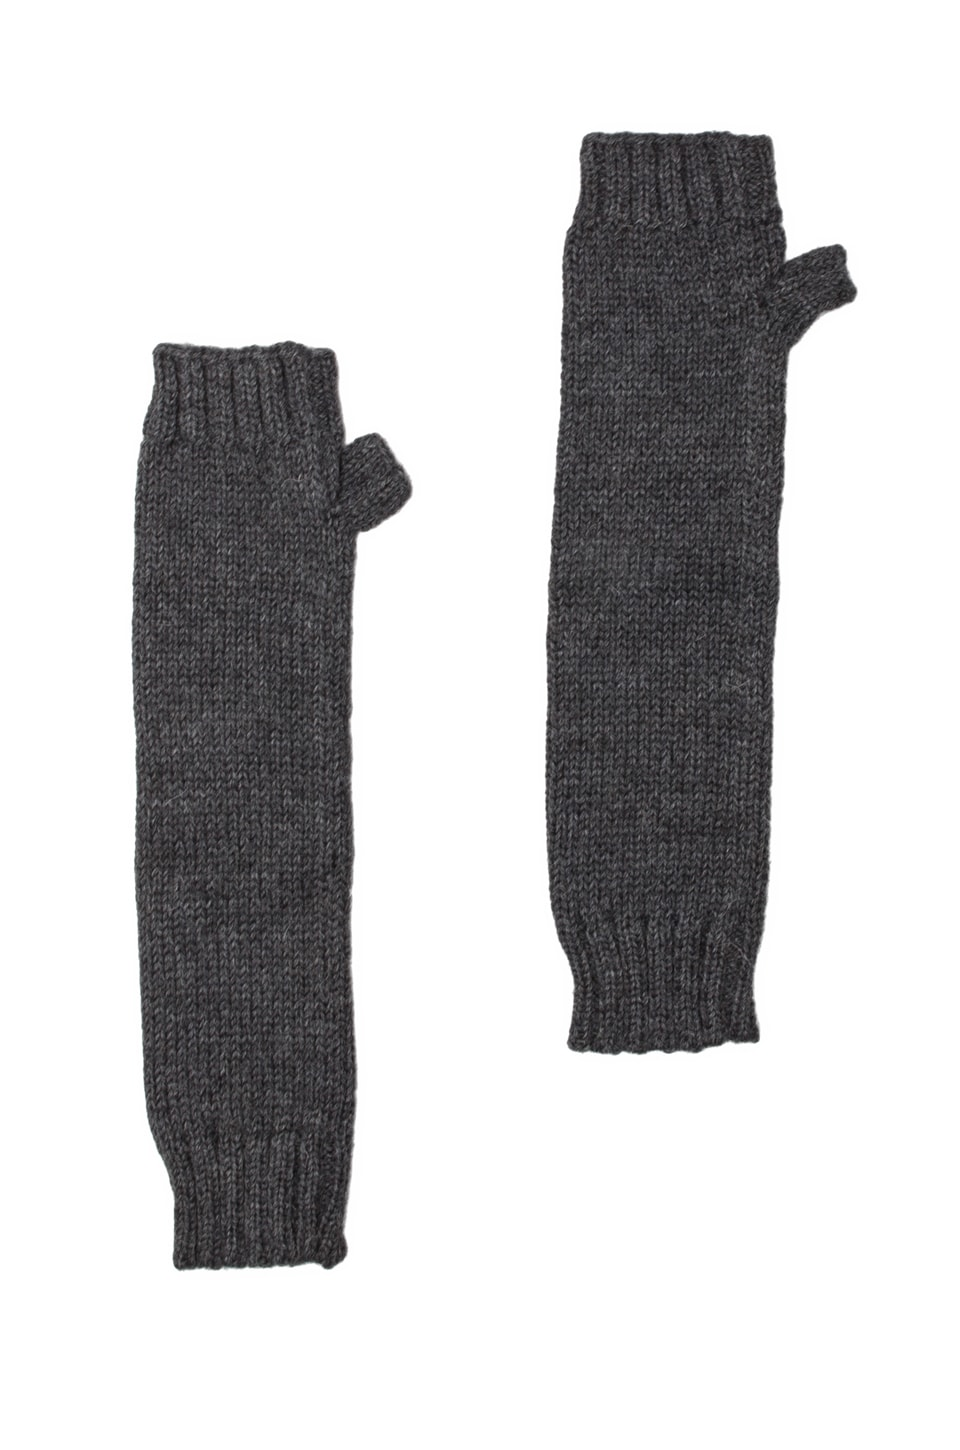 DE NADA Fingerless Armwarmers in Charcoal